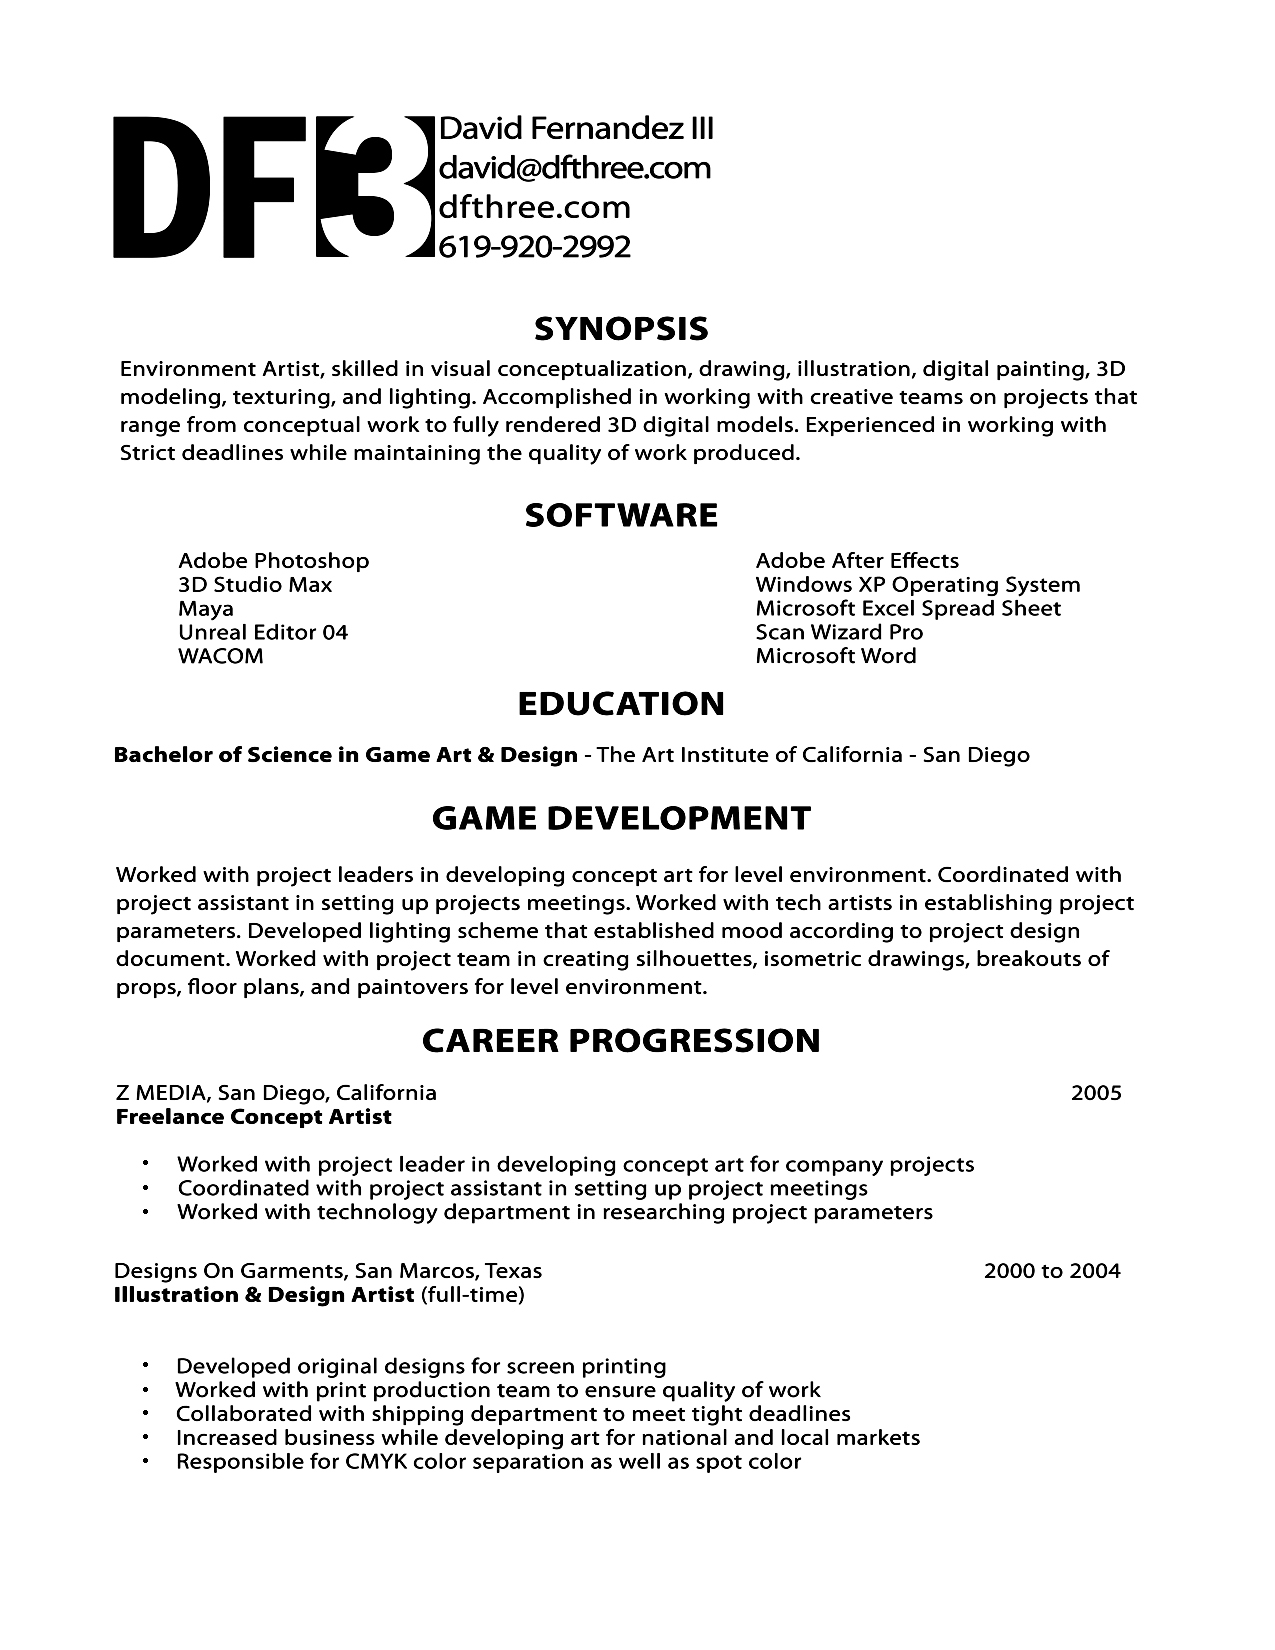 Opposenewapstandardsus  Terrific Game Developer Resume Game Tester Resume Sample Game Tester  With Gorgeous Better Jobs Faster With Extraordinary Resume Creator Free Also Create Resume Online In Addition Resume Summary Statement And Curriculum Vitae Vs Resume As Well As Manager Resume Additionally Best Free Resume Builder From Kelseymarieco With Opposenewapstandardsus  Gorgeous Game Developer Resume Game Tester Resume Sample Game Tester  With Extraordinary Better Jobs Faster And Terrific Resume Creator Free Also Create Resume Online In Addition Resume Summary Statement From Kelseymarieco